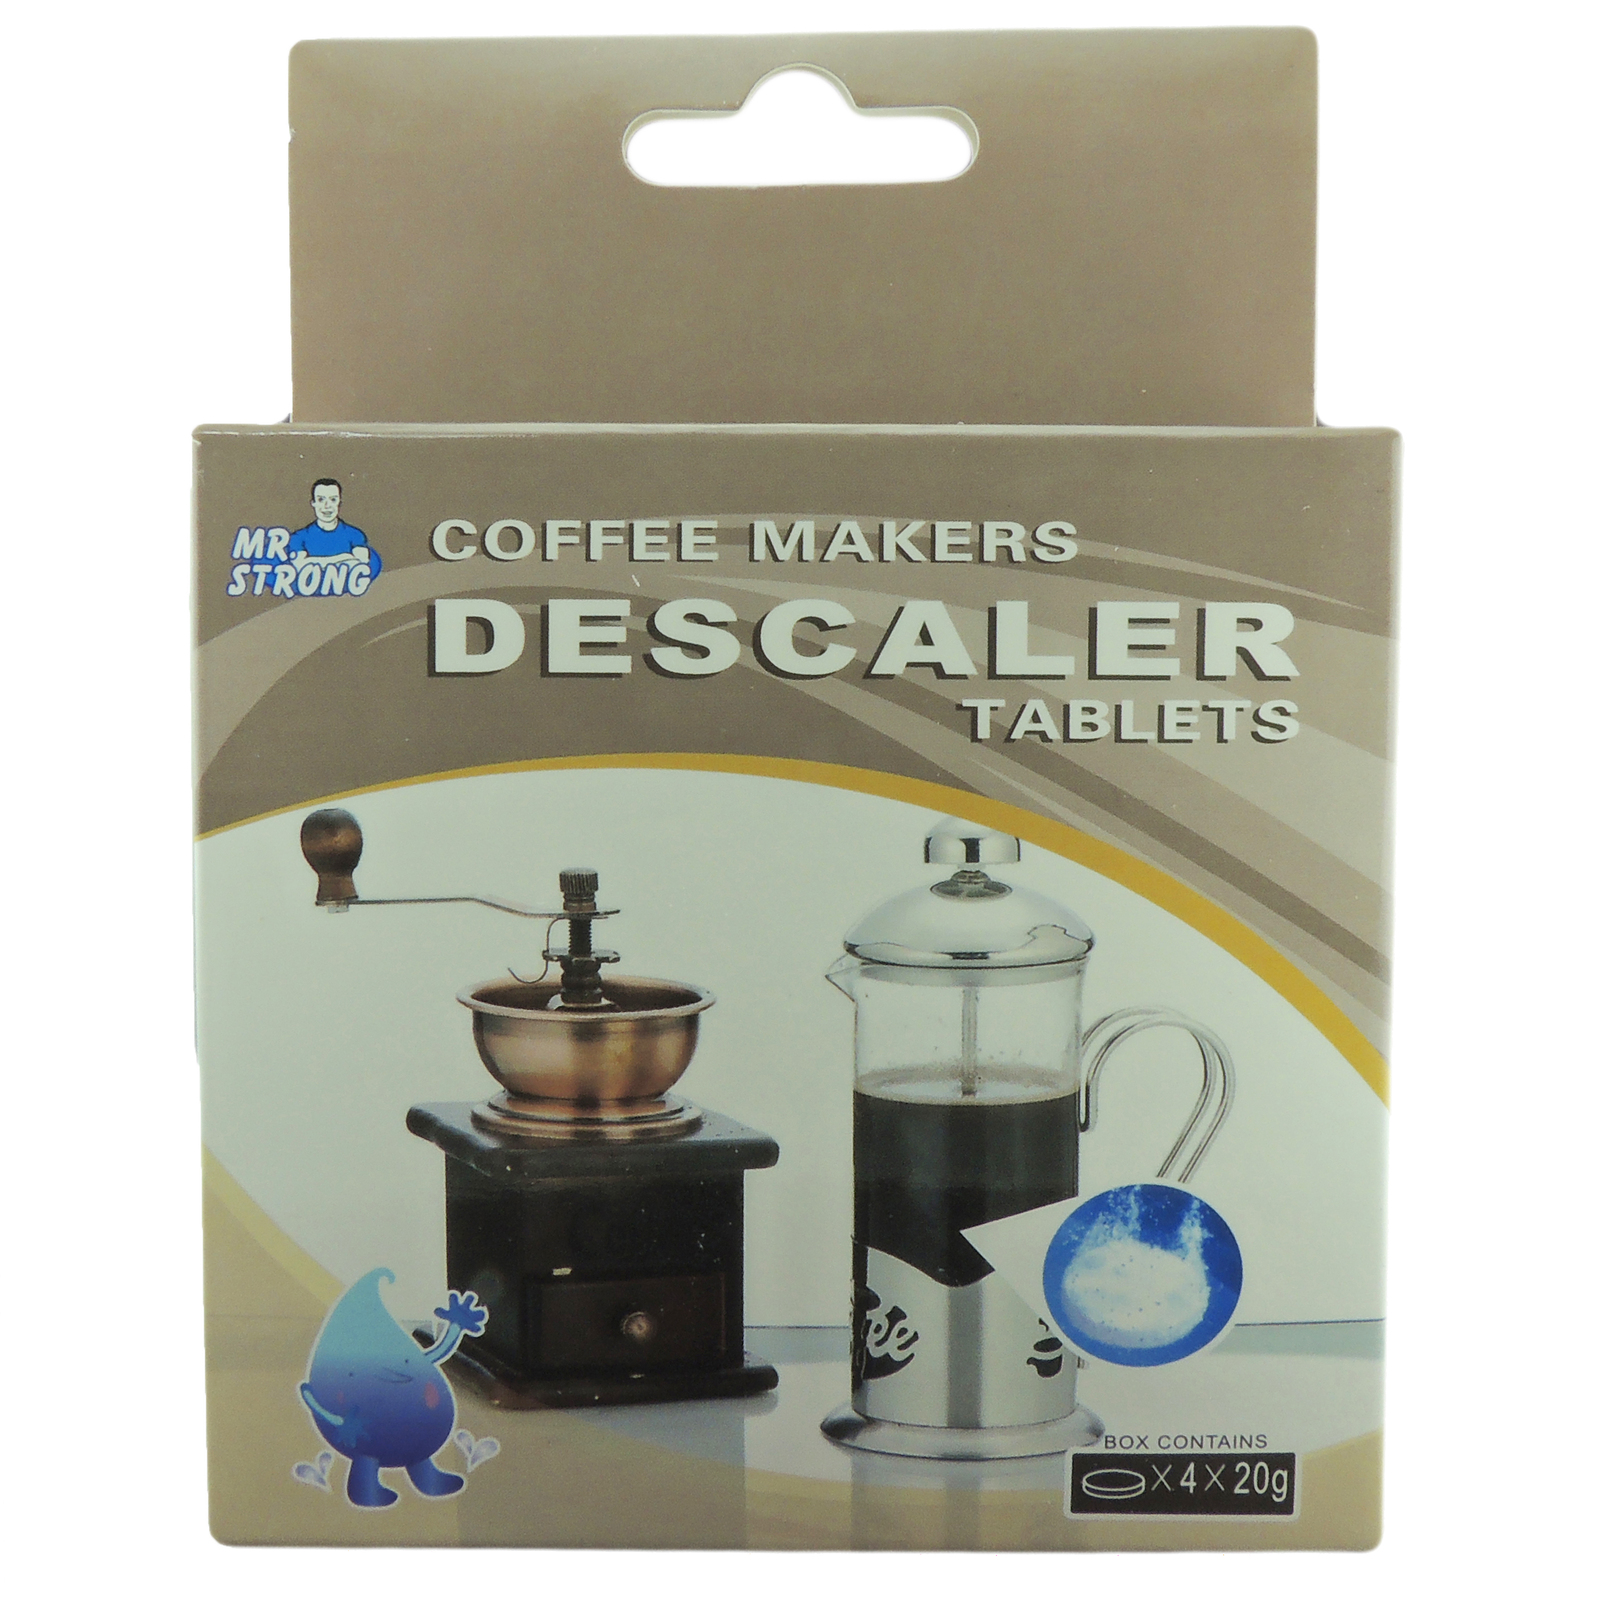 8-Pack Descaler Descaling Tablets for Nespresso Tassimo Keurig Drip Coffee Maker - Replacement ...